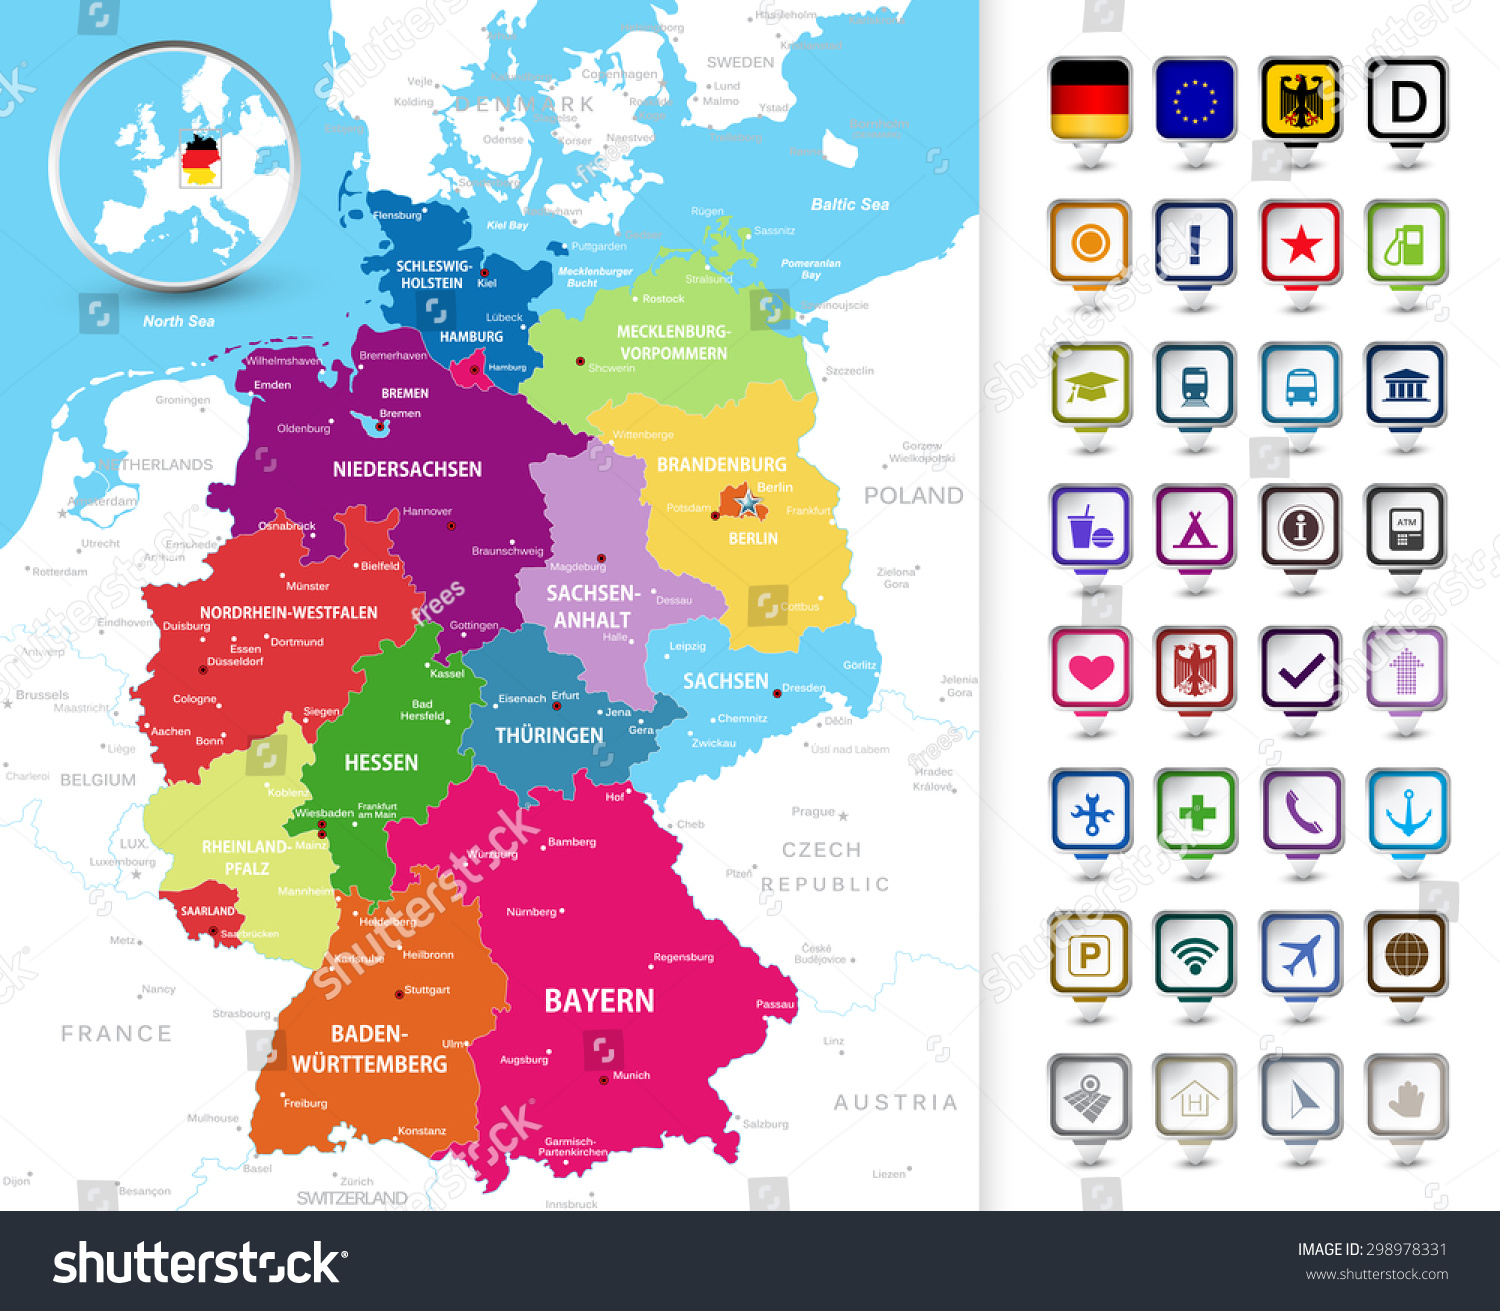 Highly Detailed Political Map Of Germany With Its Federal States – Map of German Cities and States